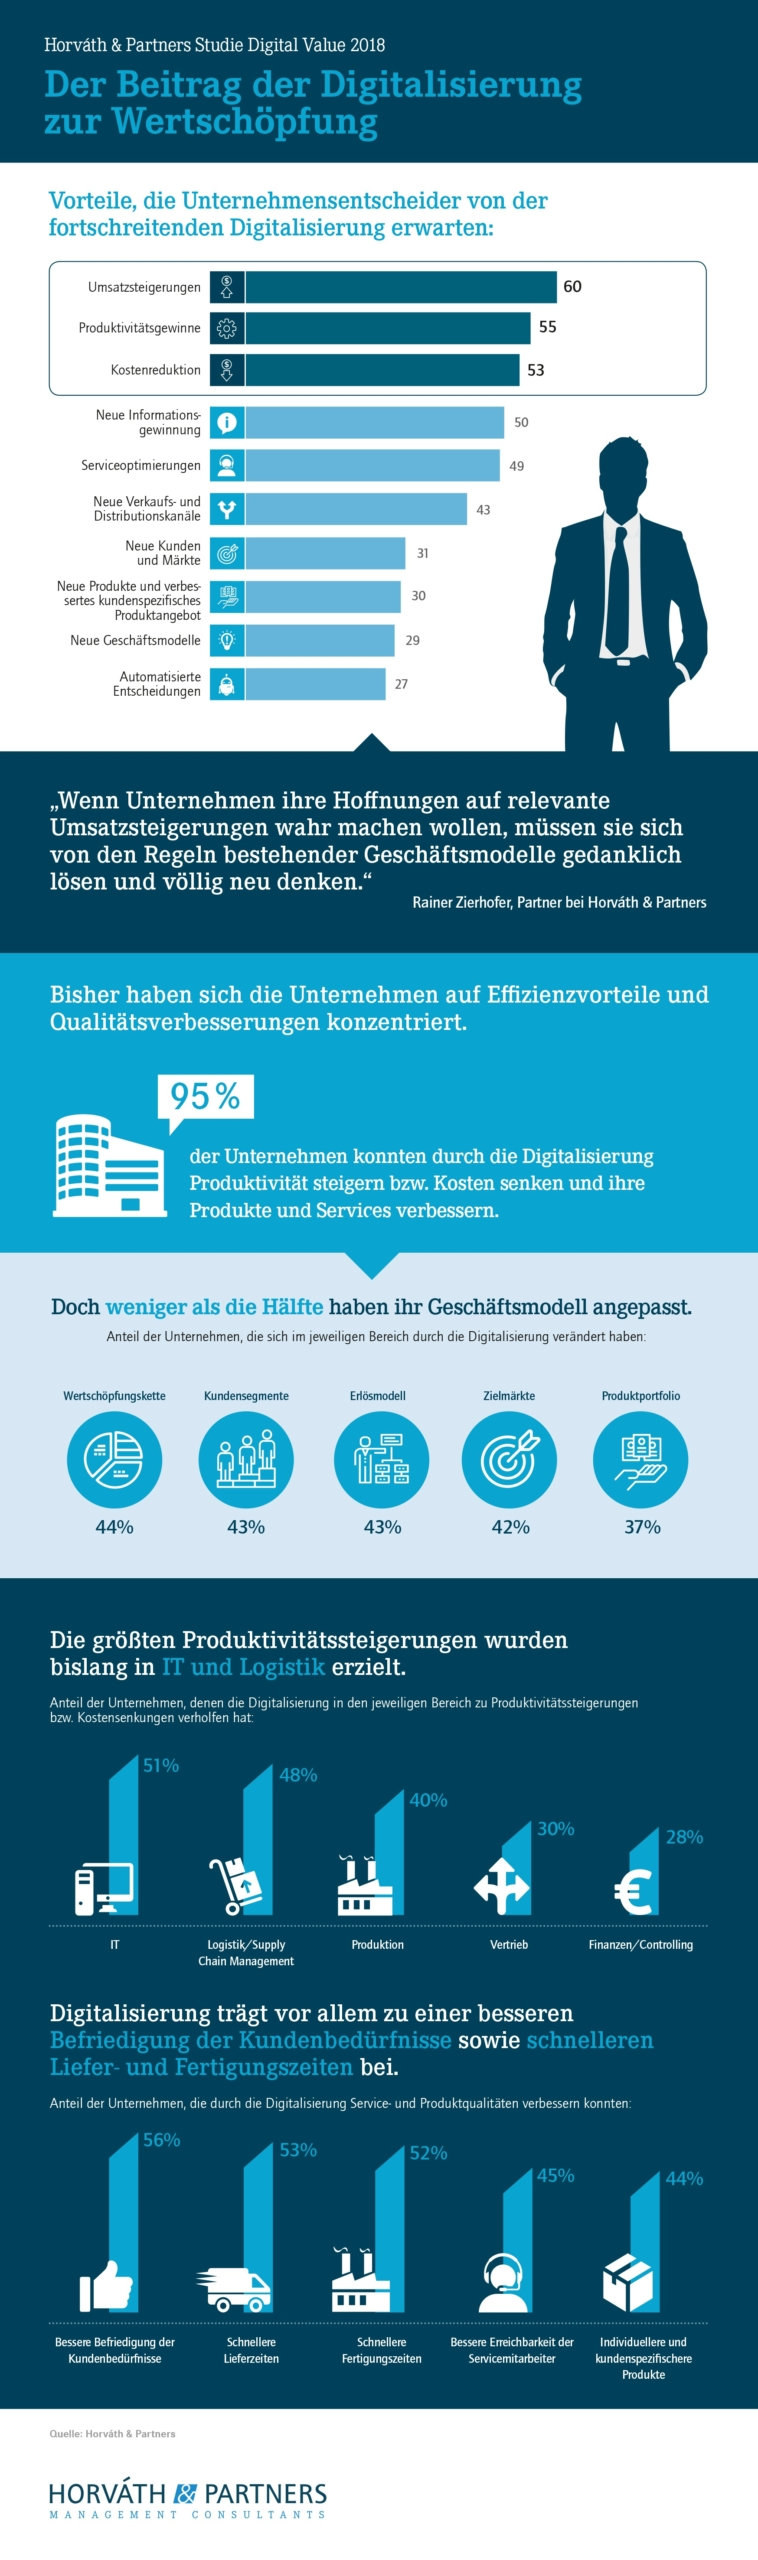 180308_Infografik_Studie_Digital_Value_Wertschoepfung Digitalisierung